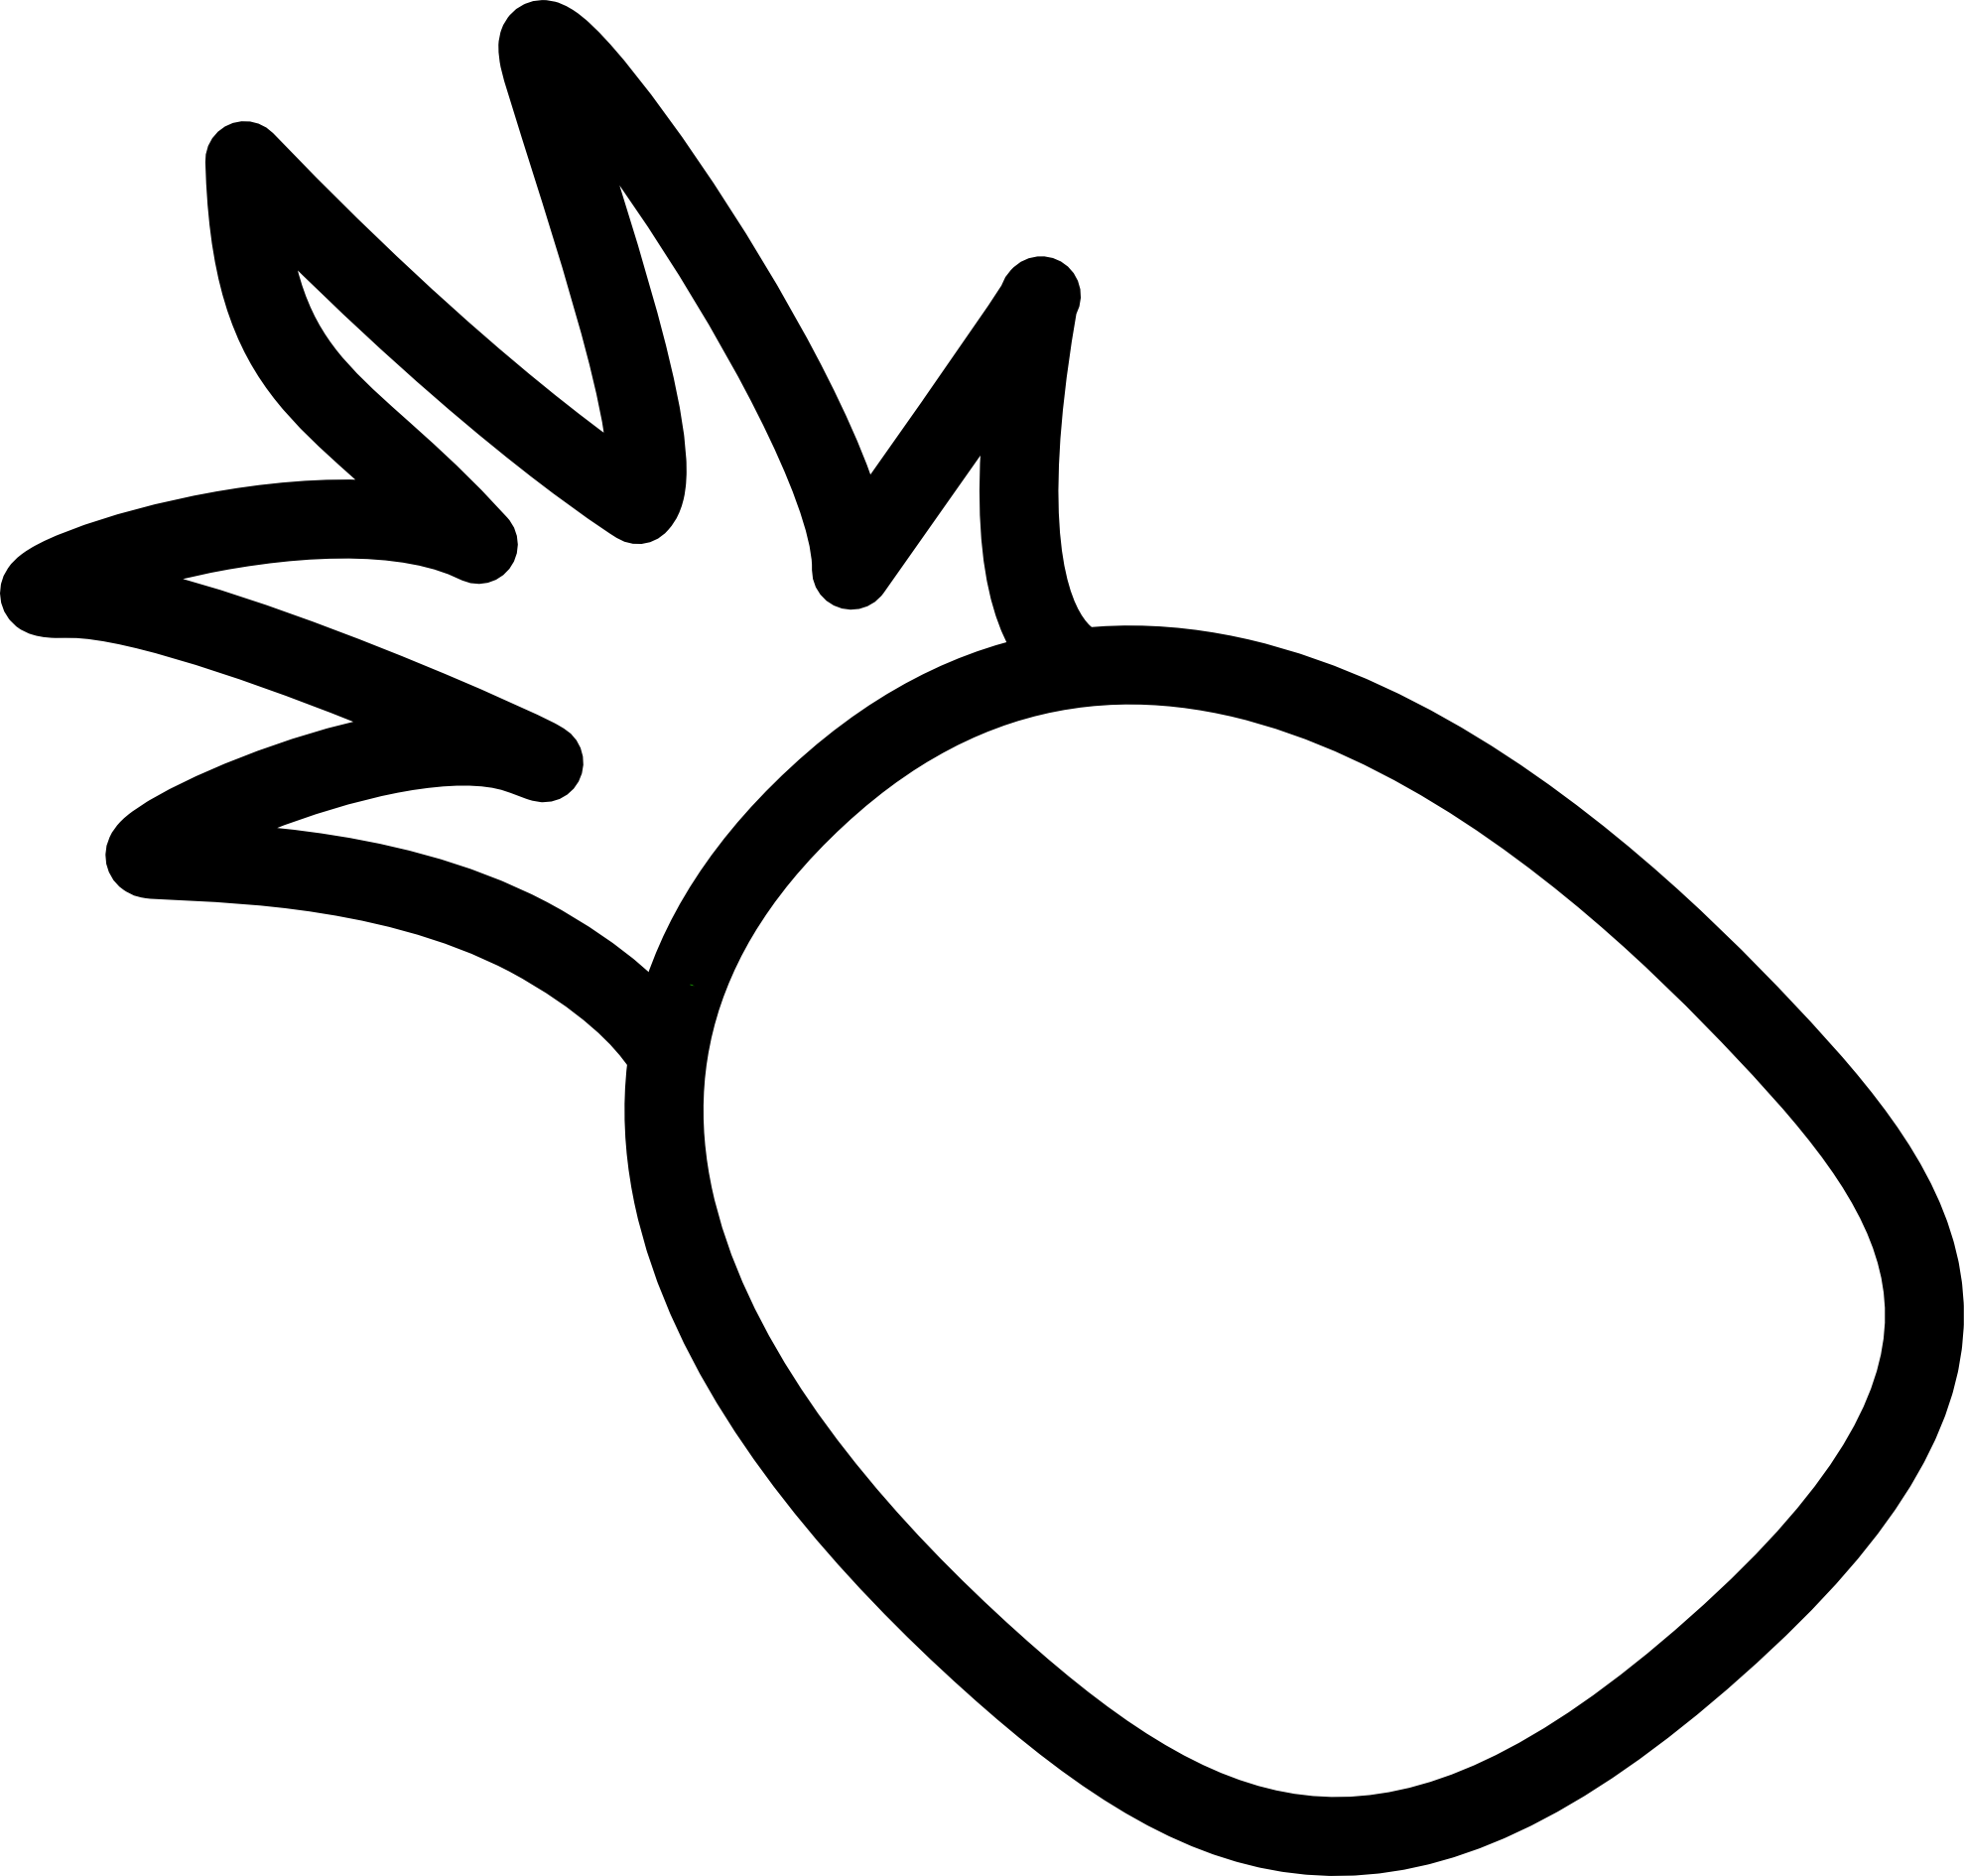 clipart transparent stock Pineapple clipart black and white. Icon panda free images